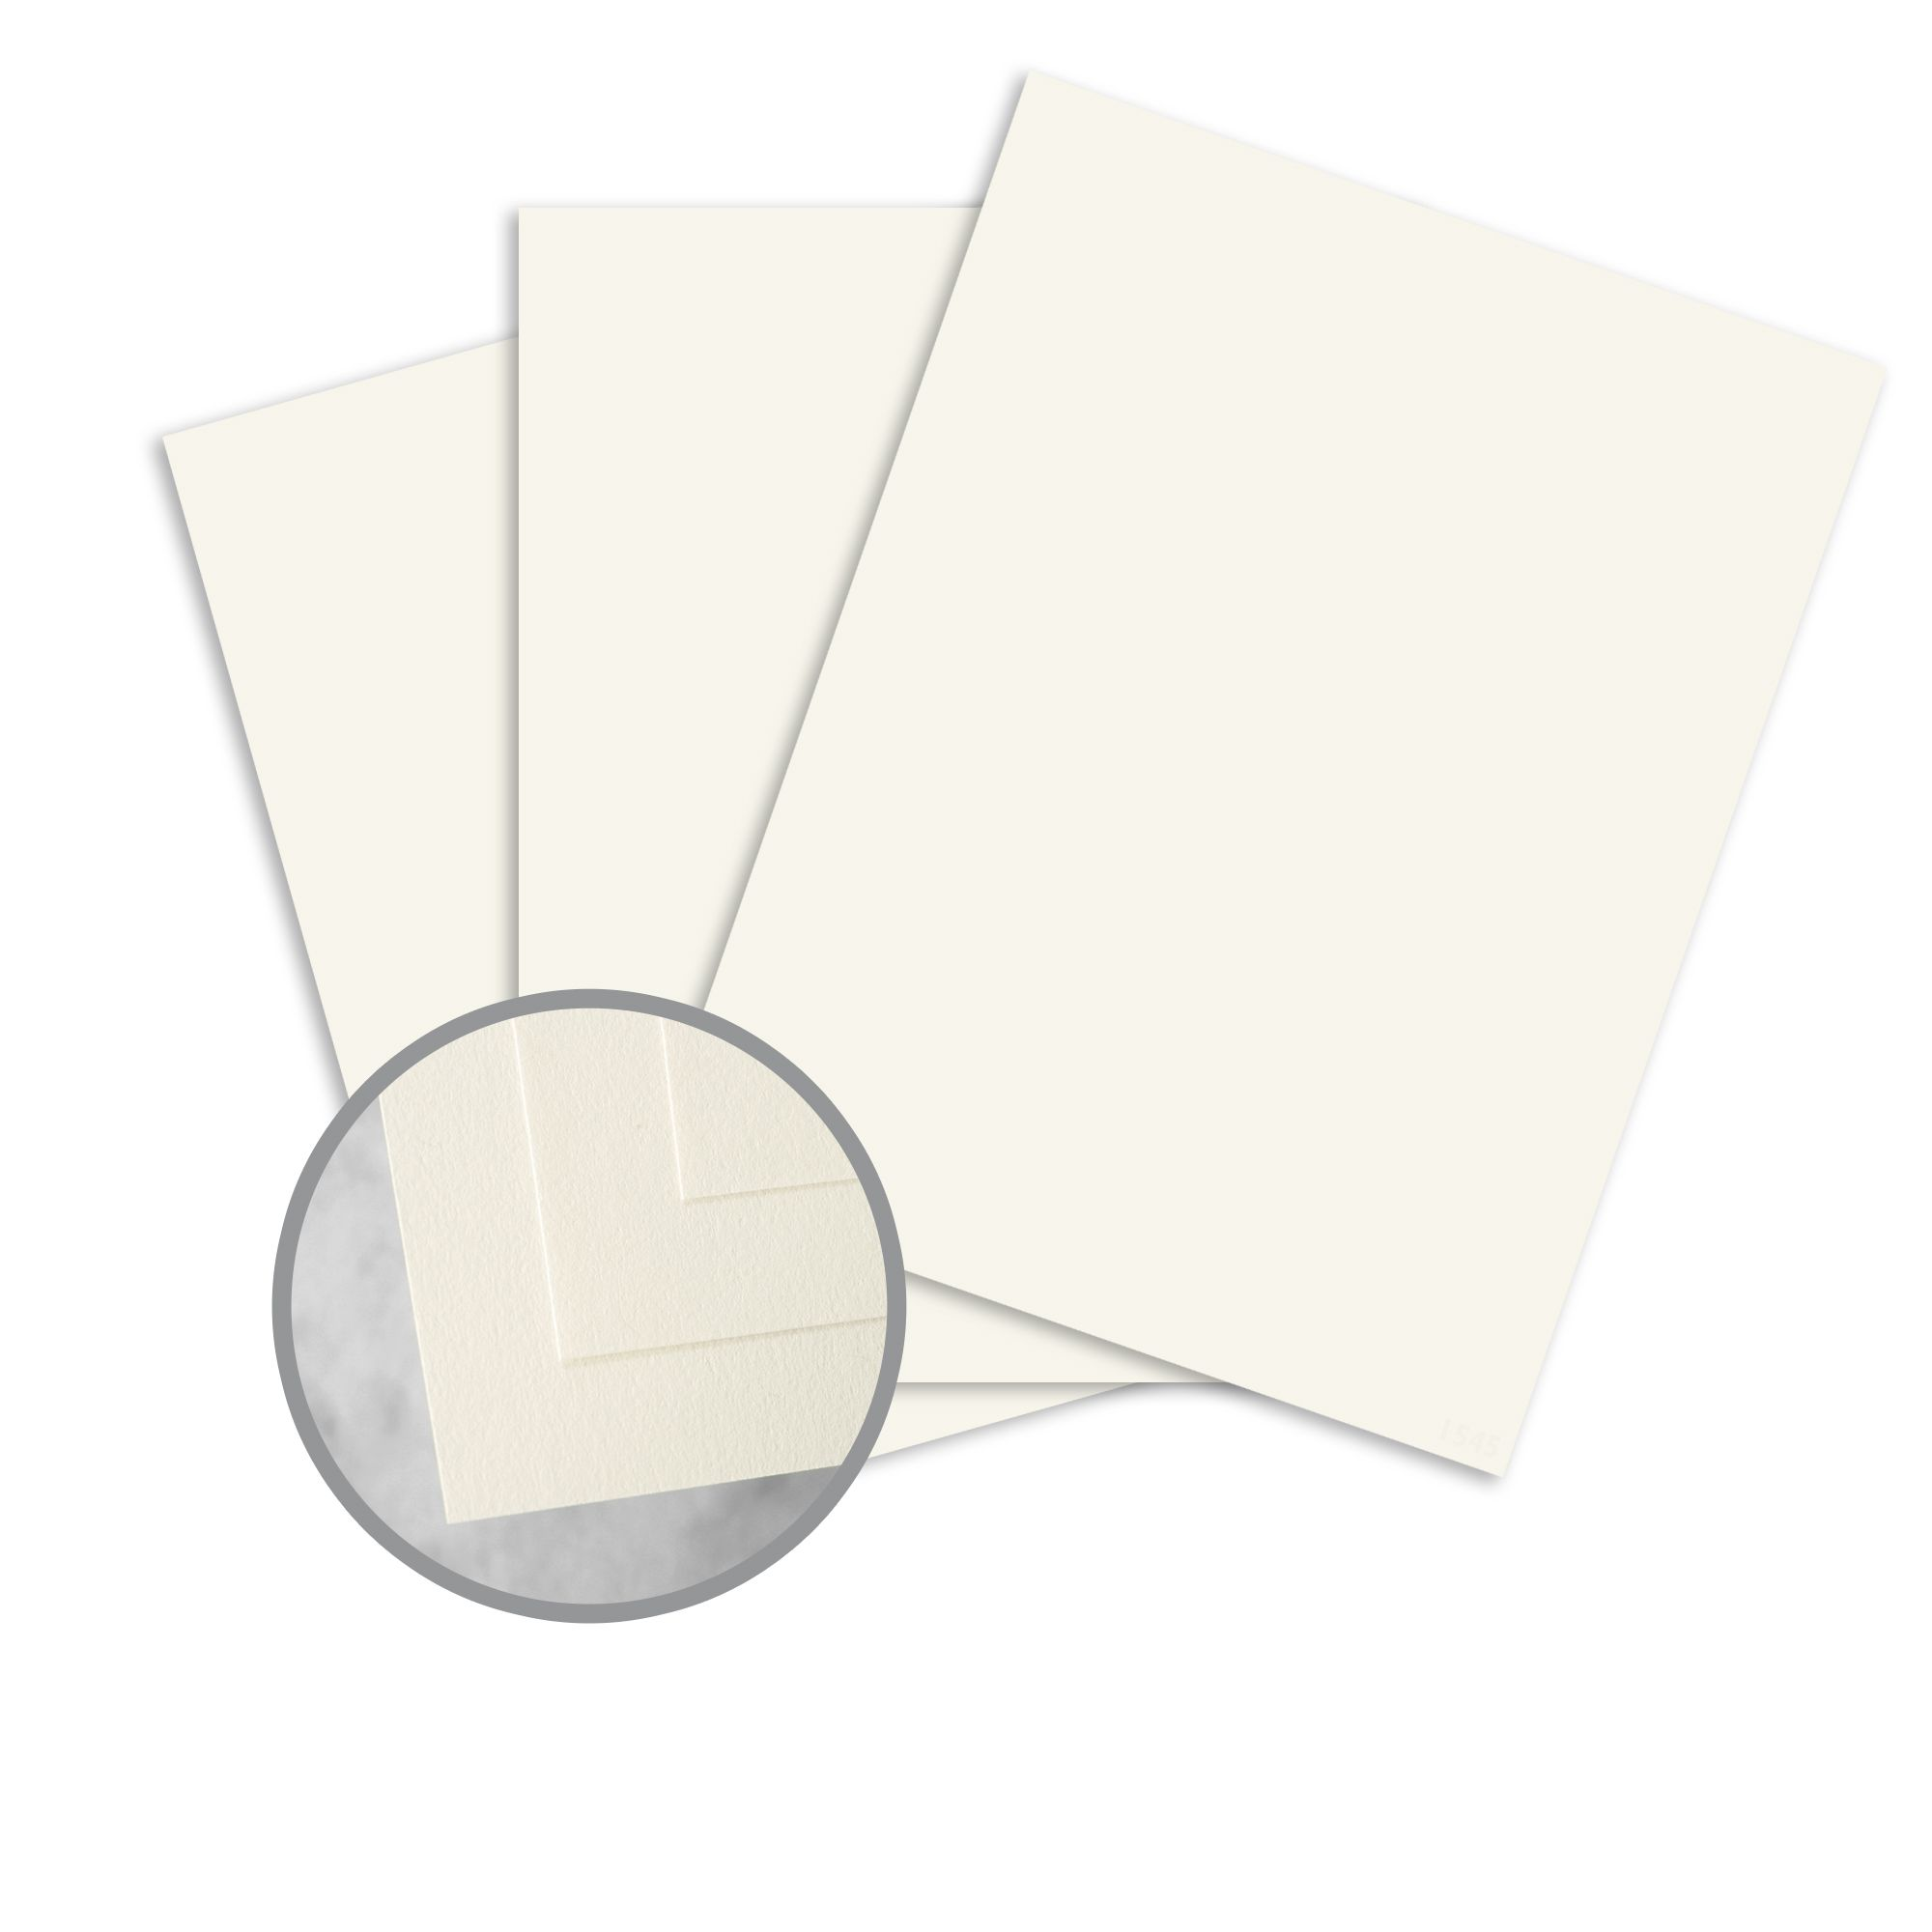 Neenah Classic Crest Natural White Card Stock 80 lb cover 50 pack